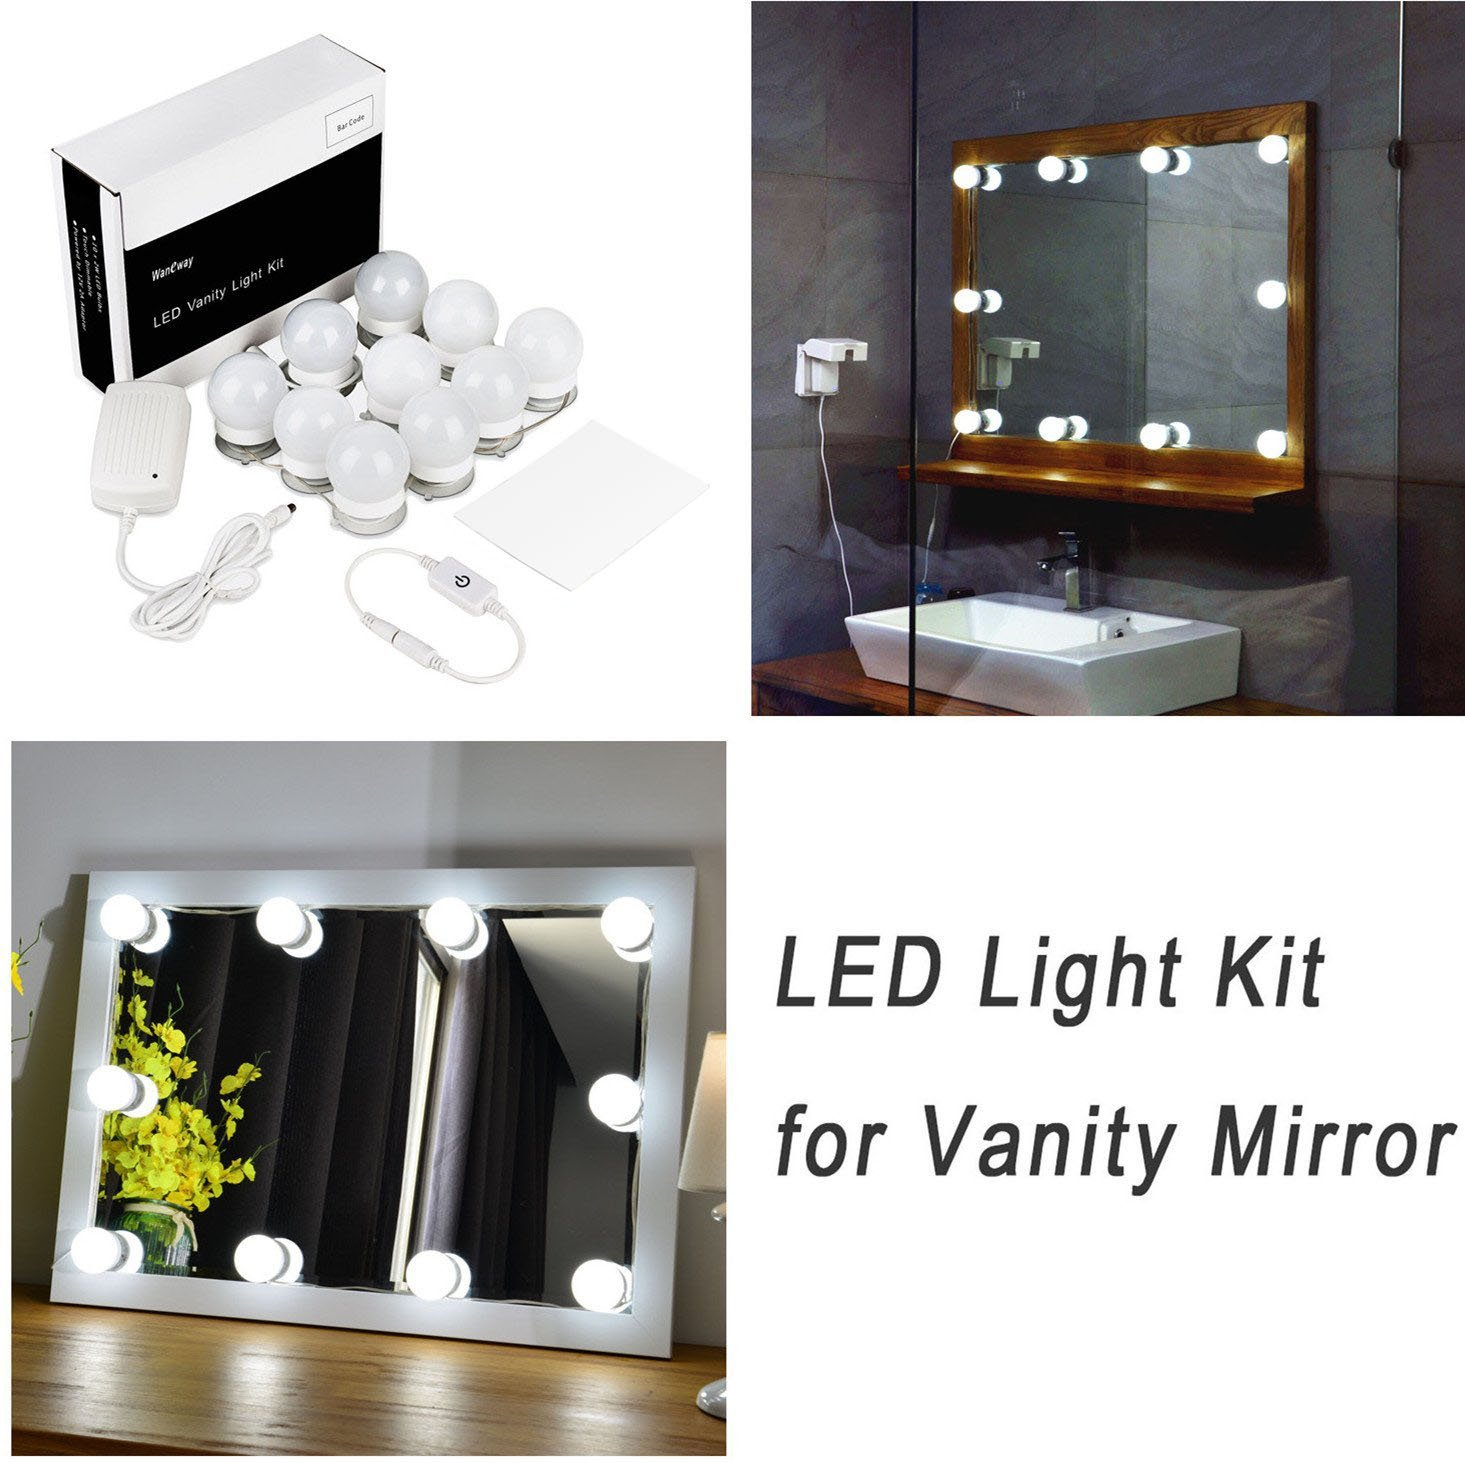 Hollywood style led vanity mirror lights kit for makeup dressing hollywood style led vanity mirror lights kit for makeup dressing table vanity set mirrors with dimmer and power supply plug in lighting fixture strip mozeypictures Image collections